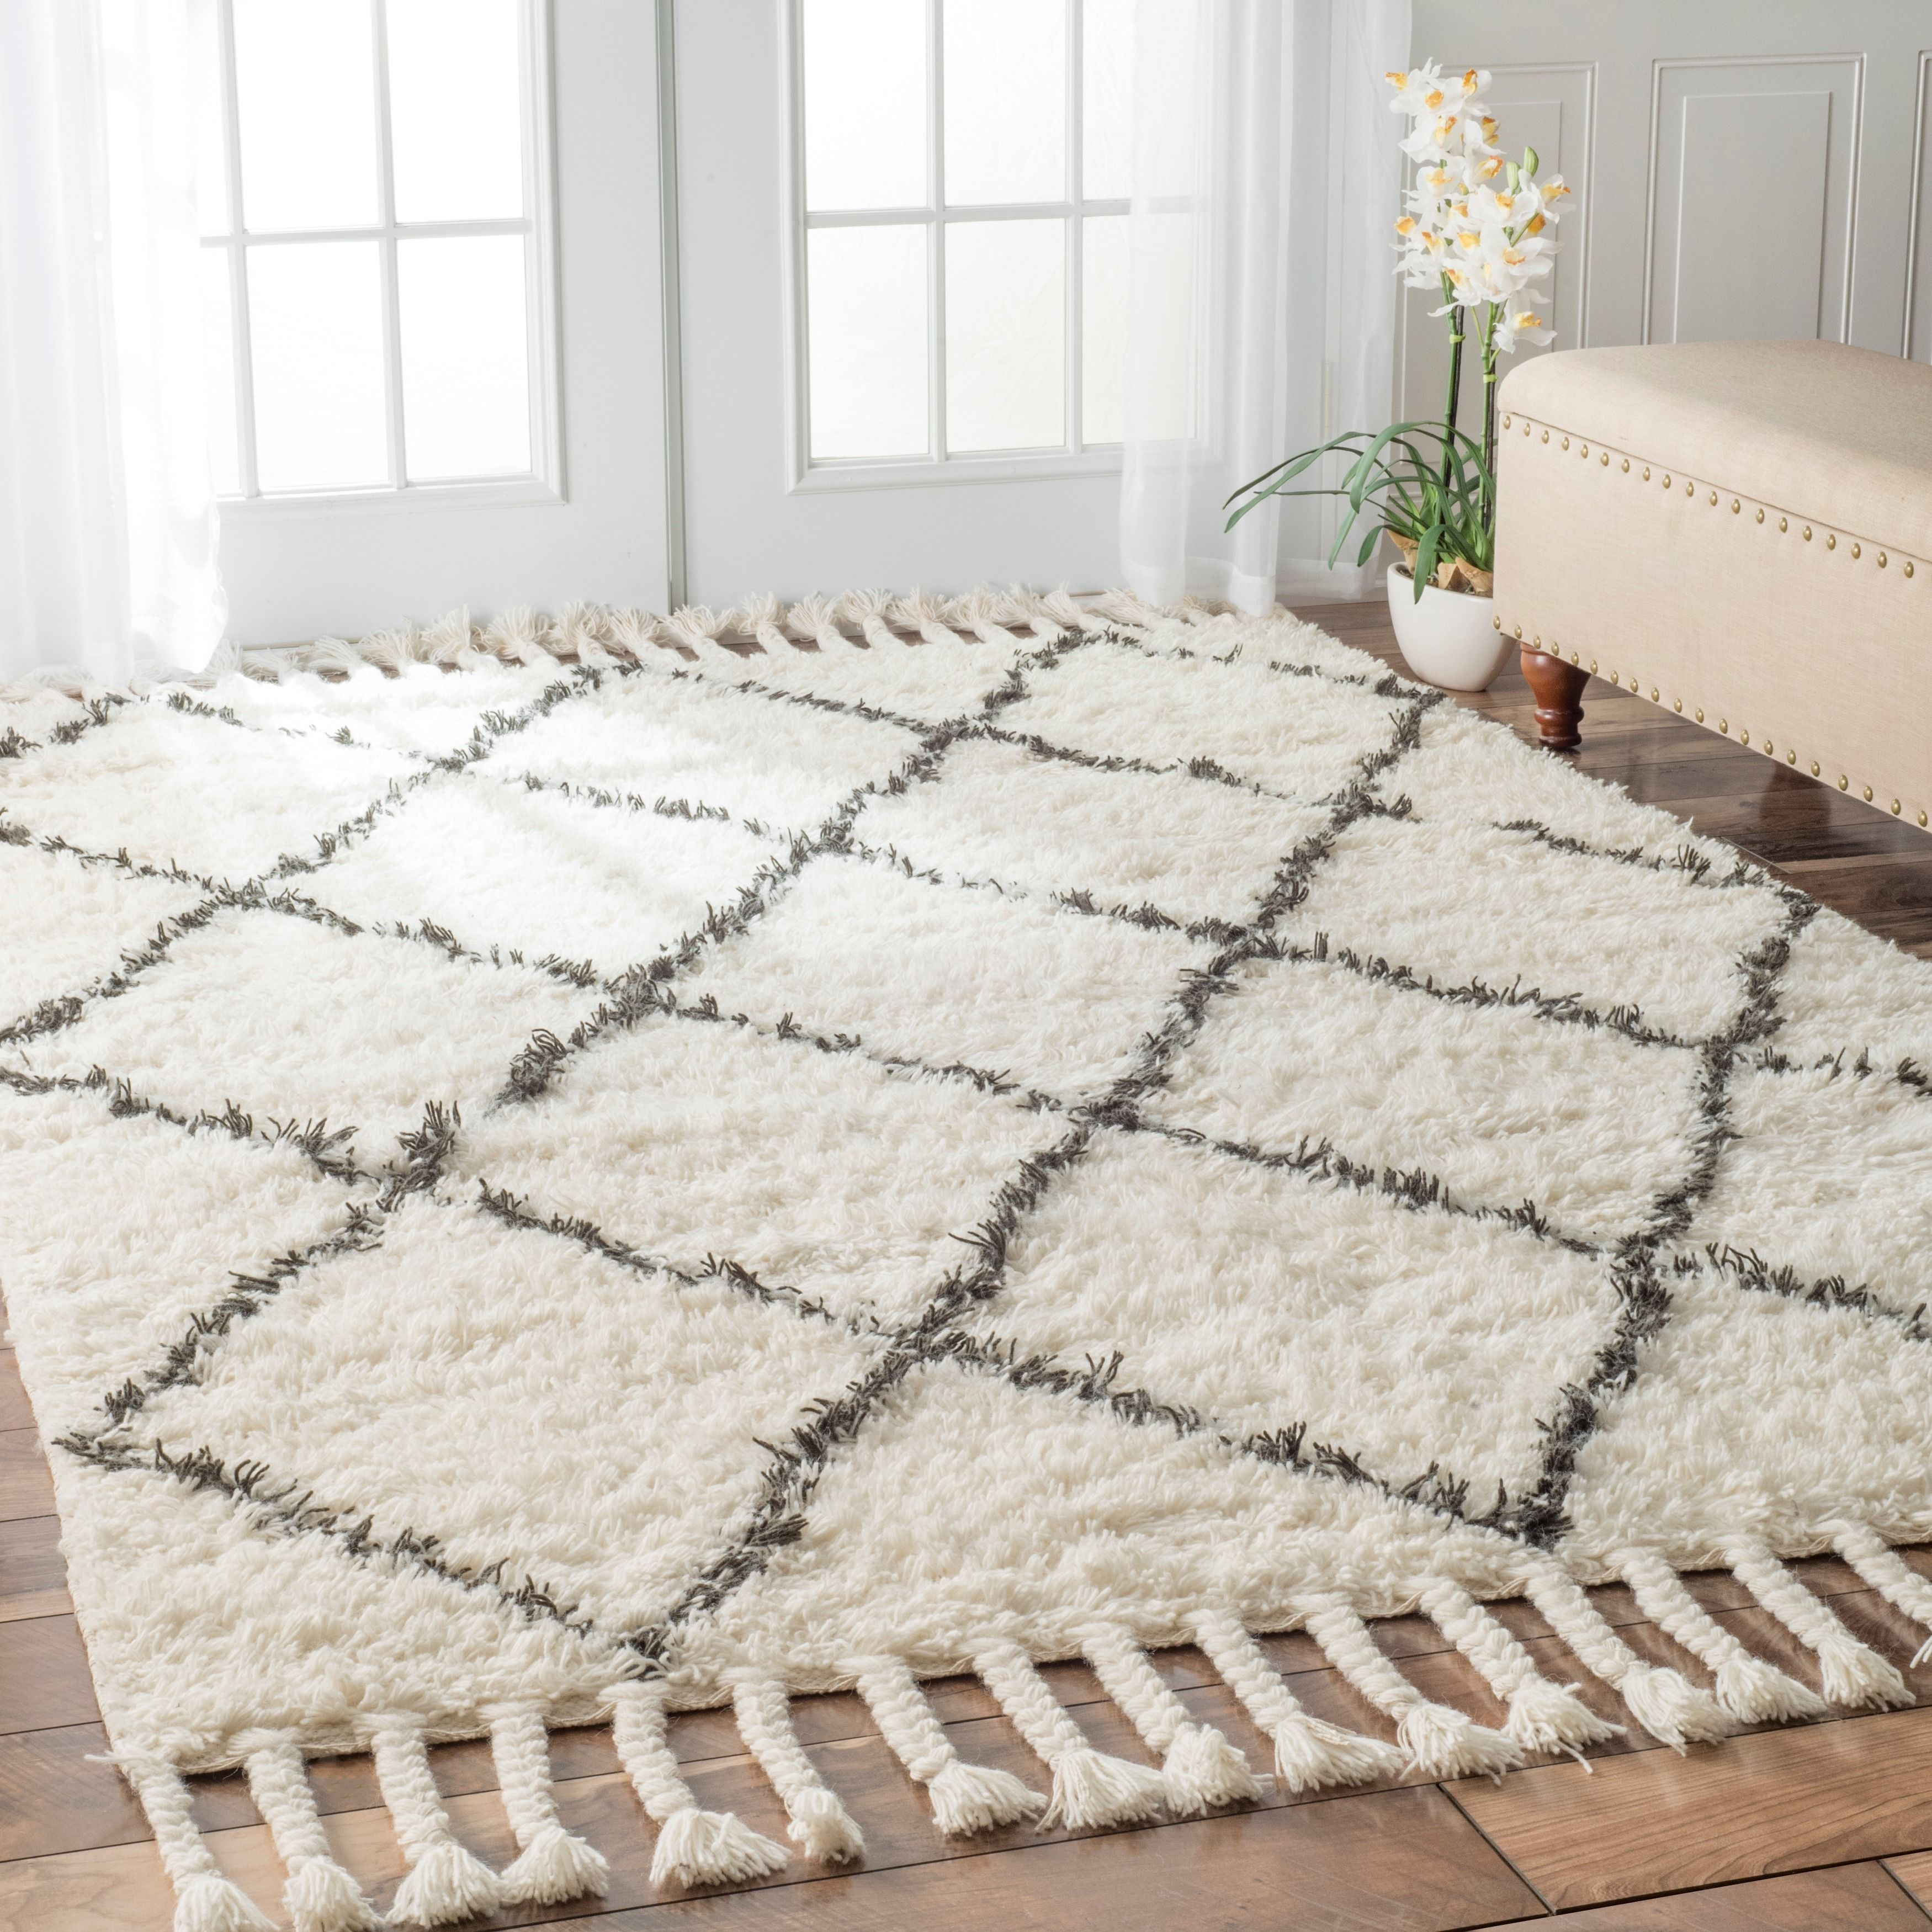 Lovable Marrakesh Shag Rug | Chic Moroccan Shag Rug Idea